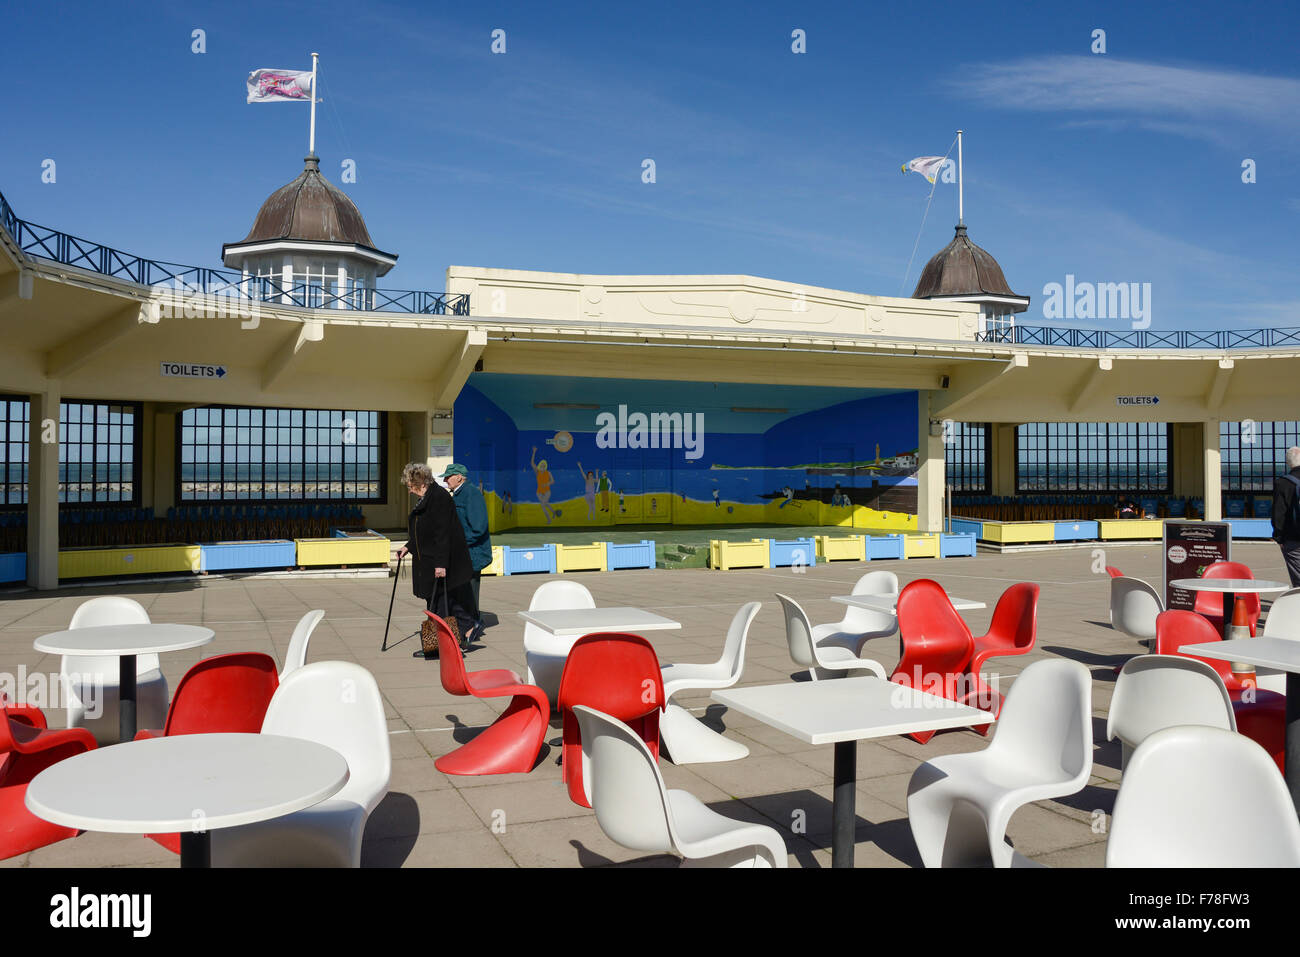 Stage in atrium of Central Bandstand, Herne Bay, Kent, England, United Kingdom - Stock Image